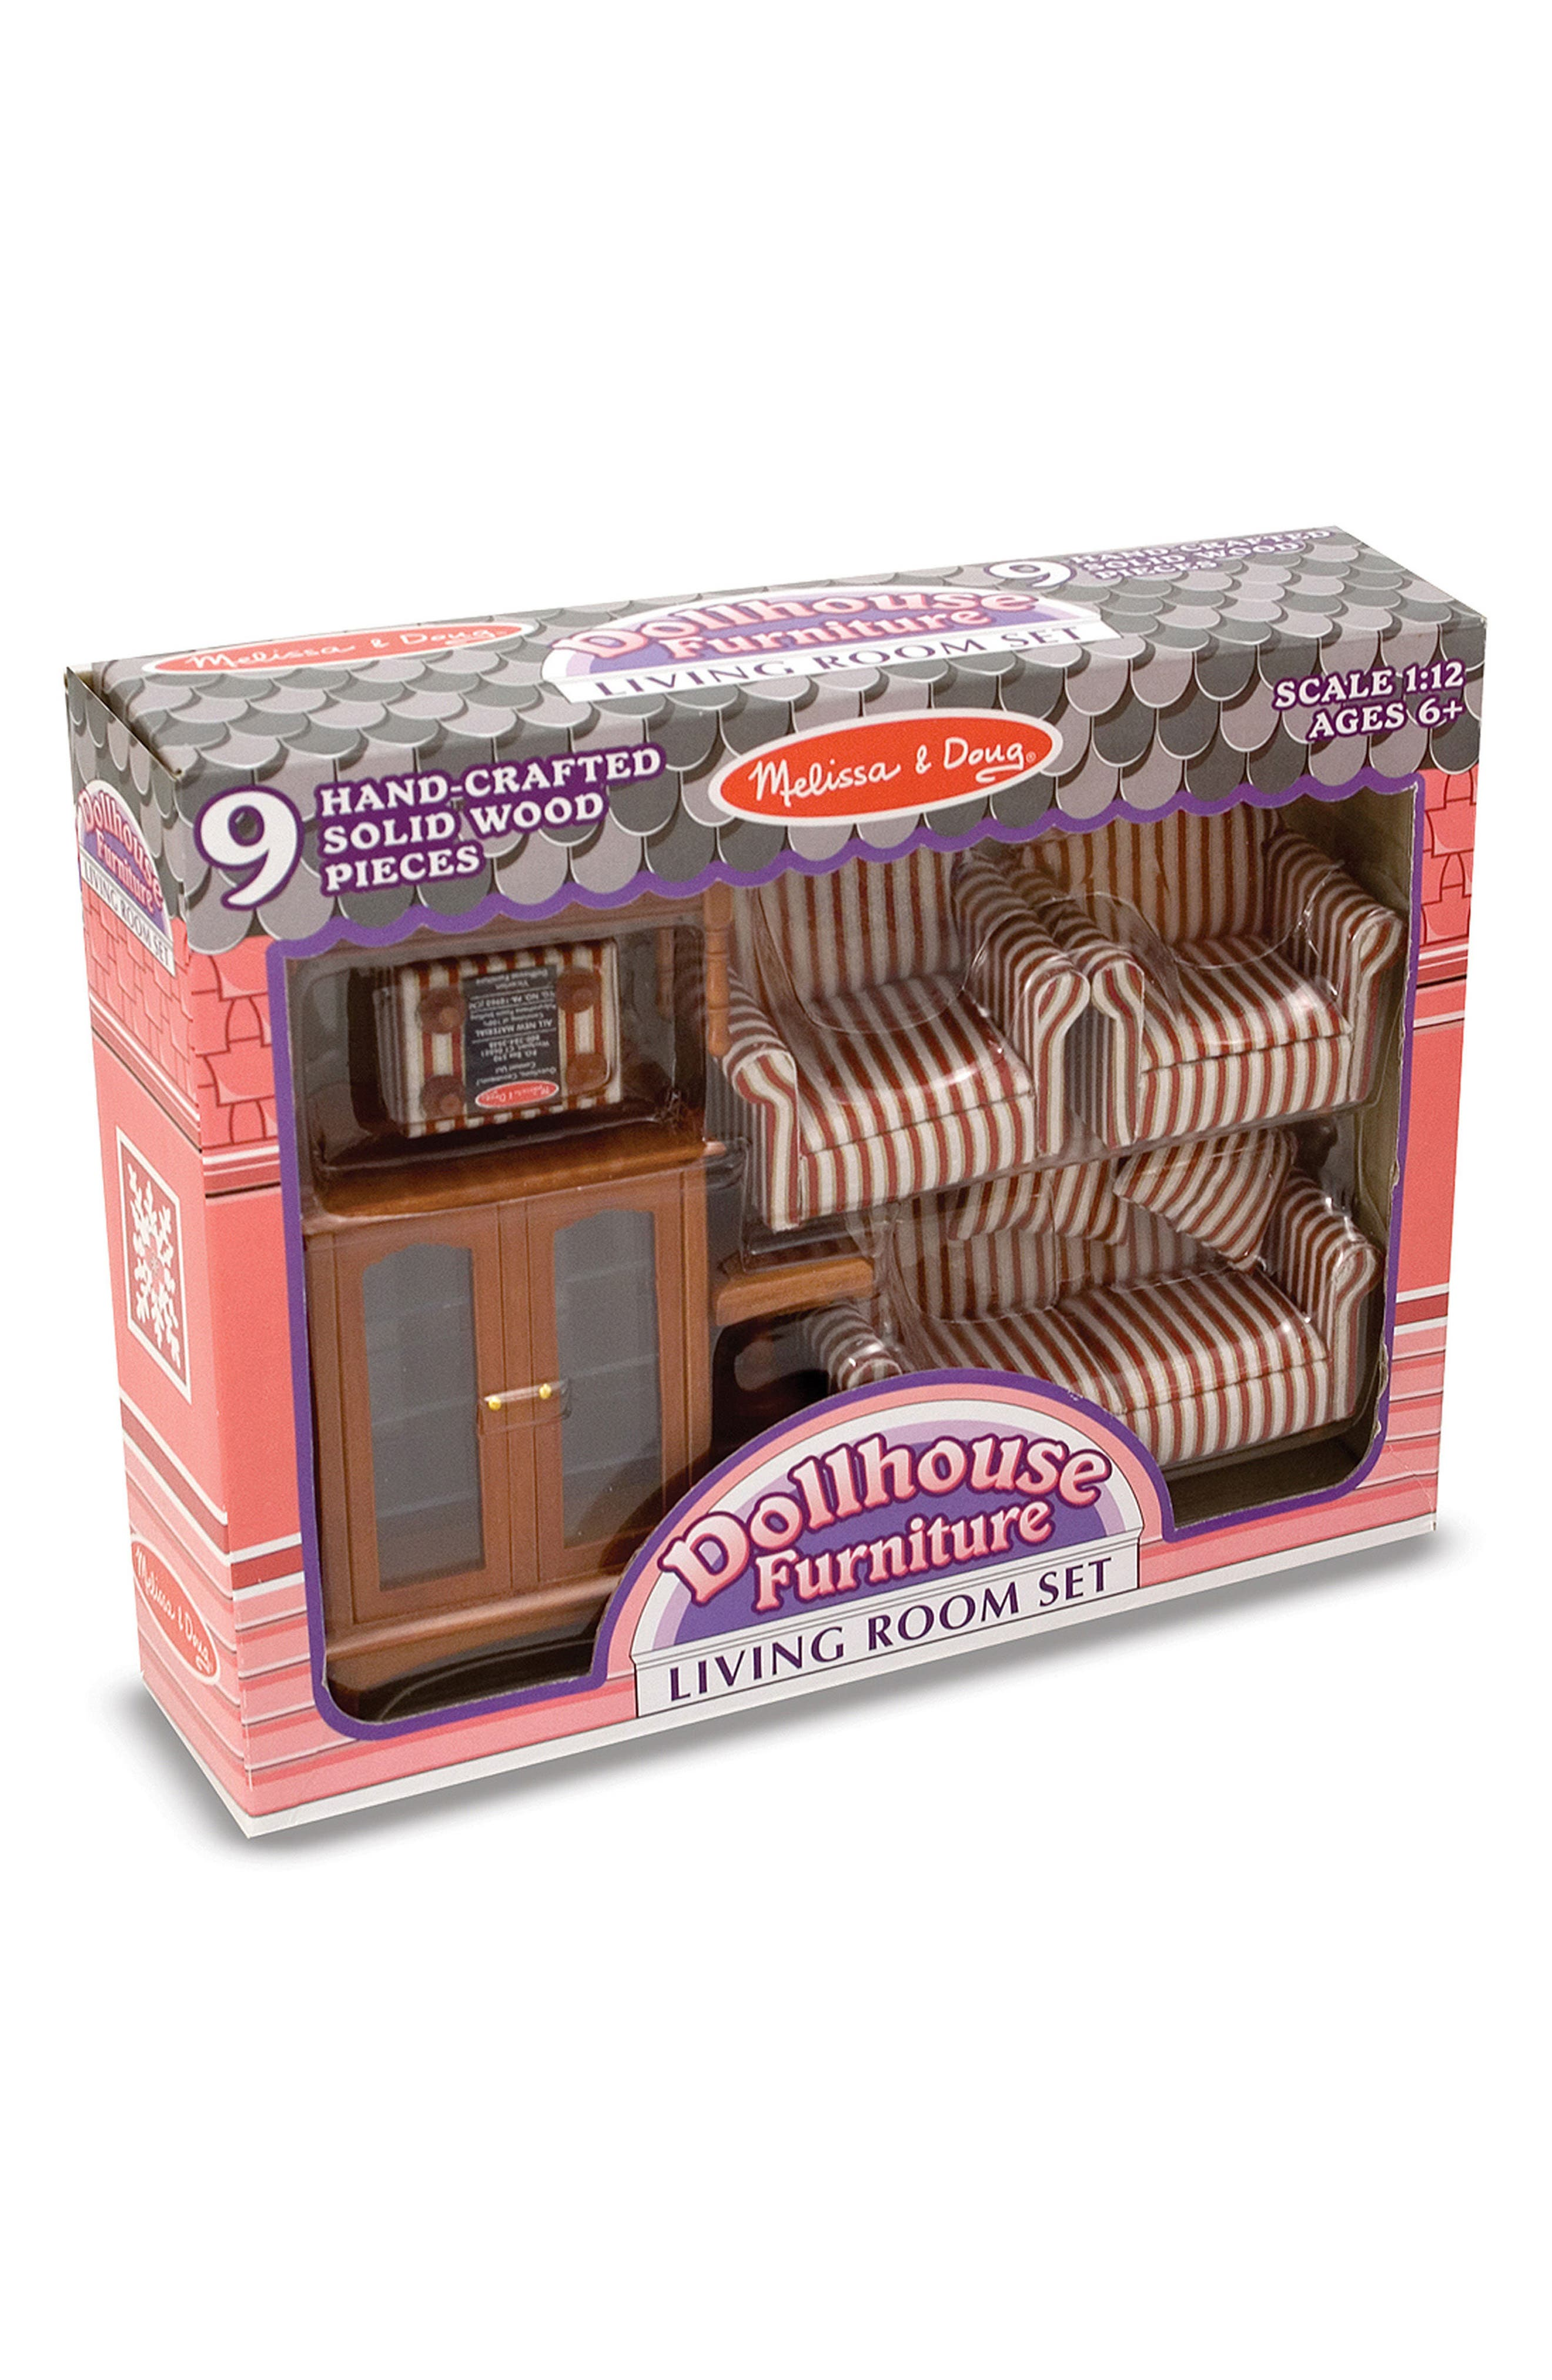 Melissa & Doug 1:12 Scale Dollhouse Living Room Furniture